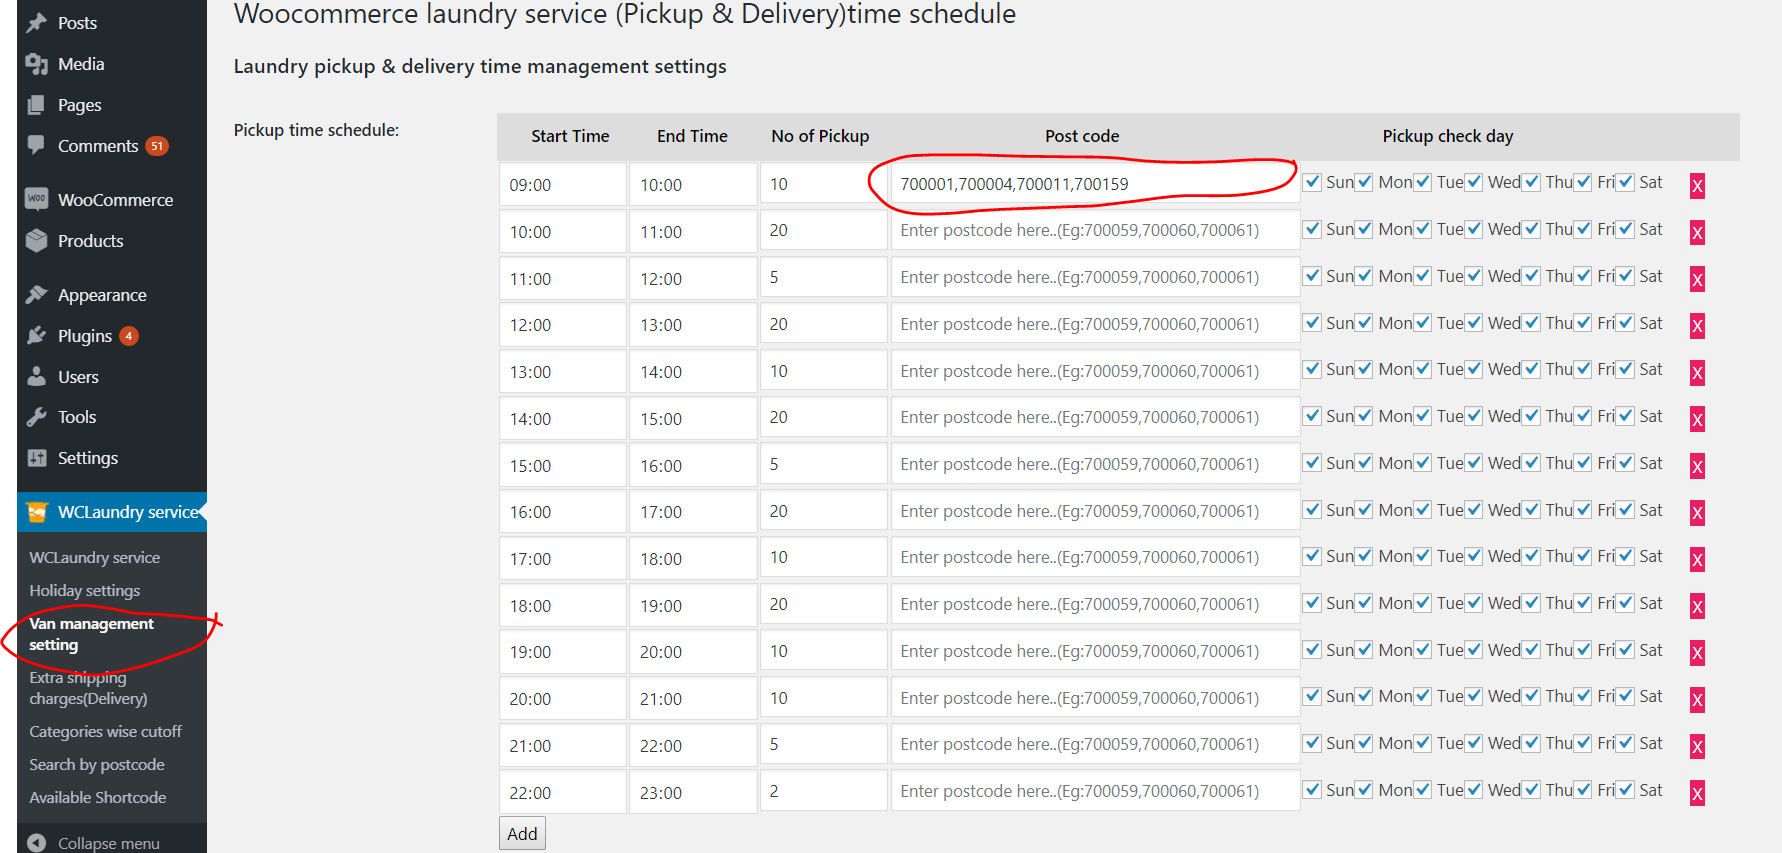 Navigate to Van Management Settings, create time slots and assign to to certain zip codes.